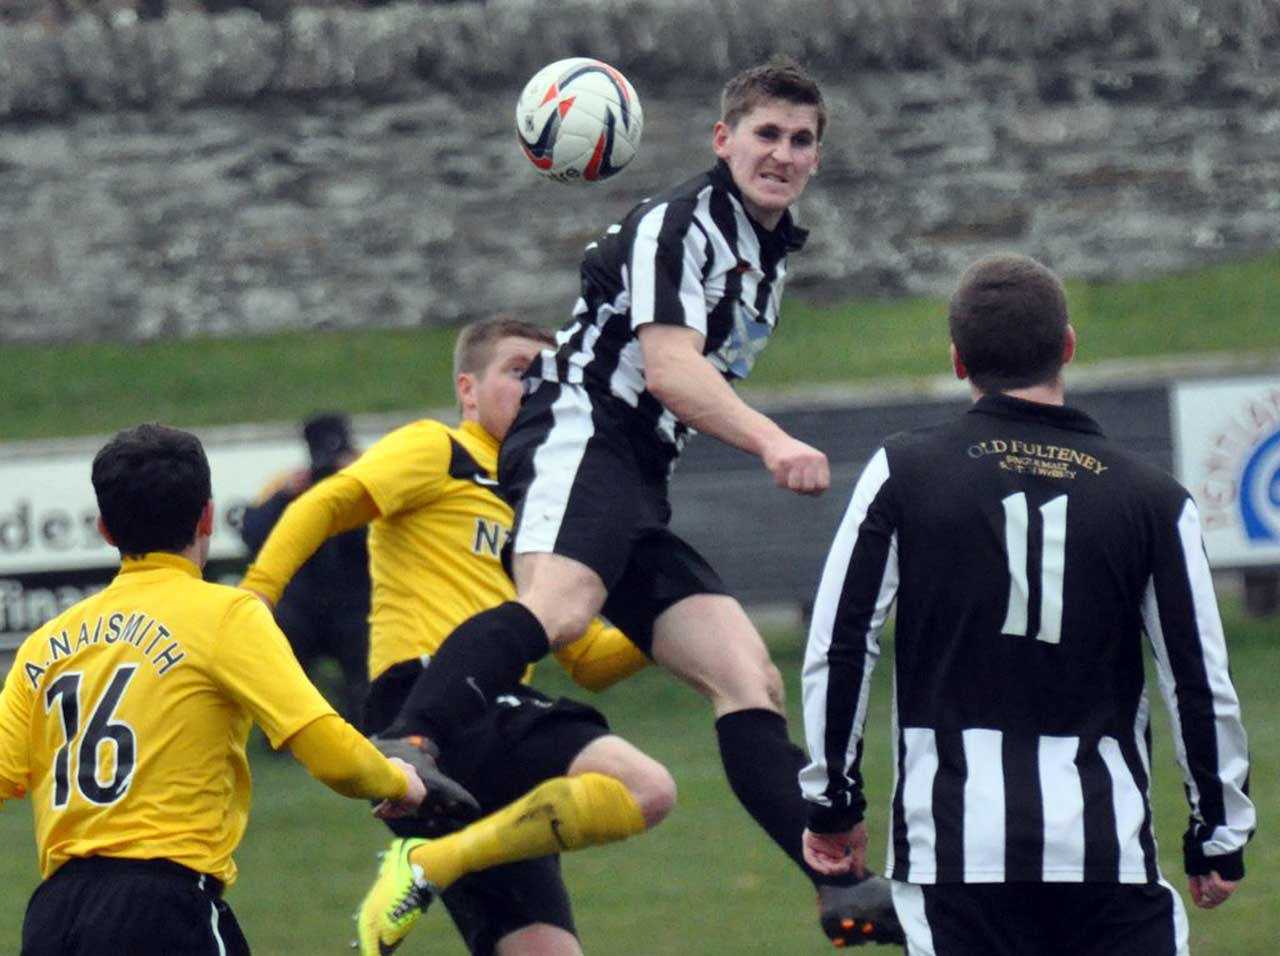 Photo: Wick Academy 1 Nairn County 2